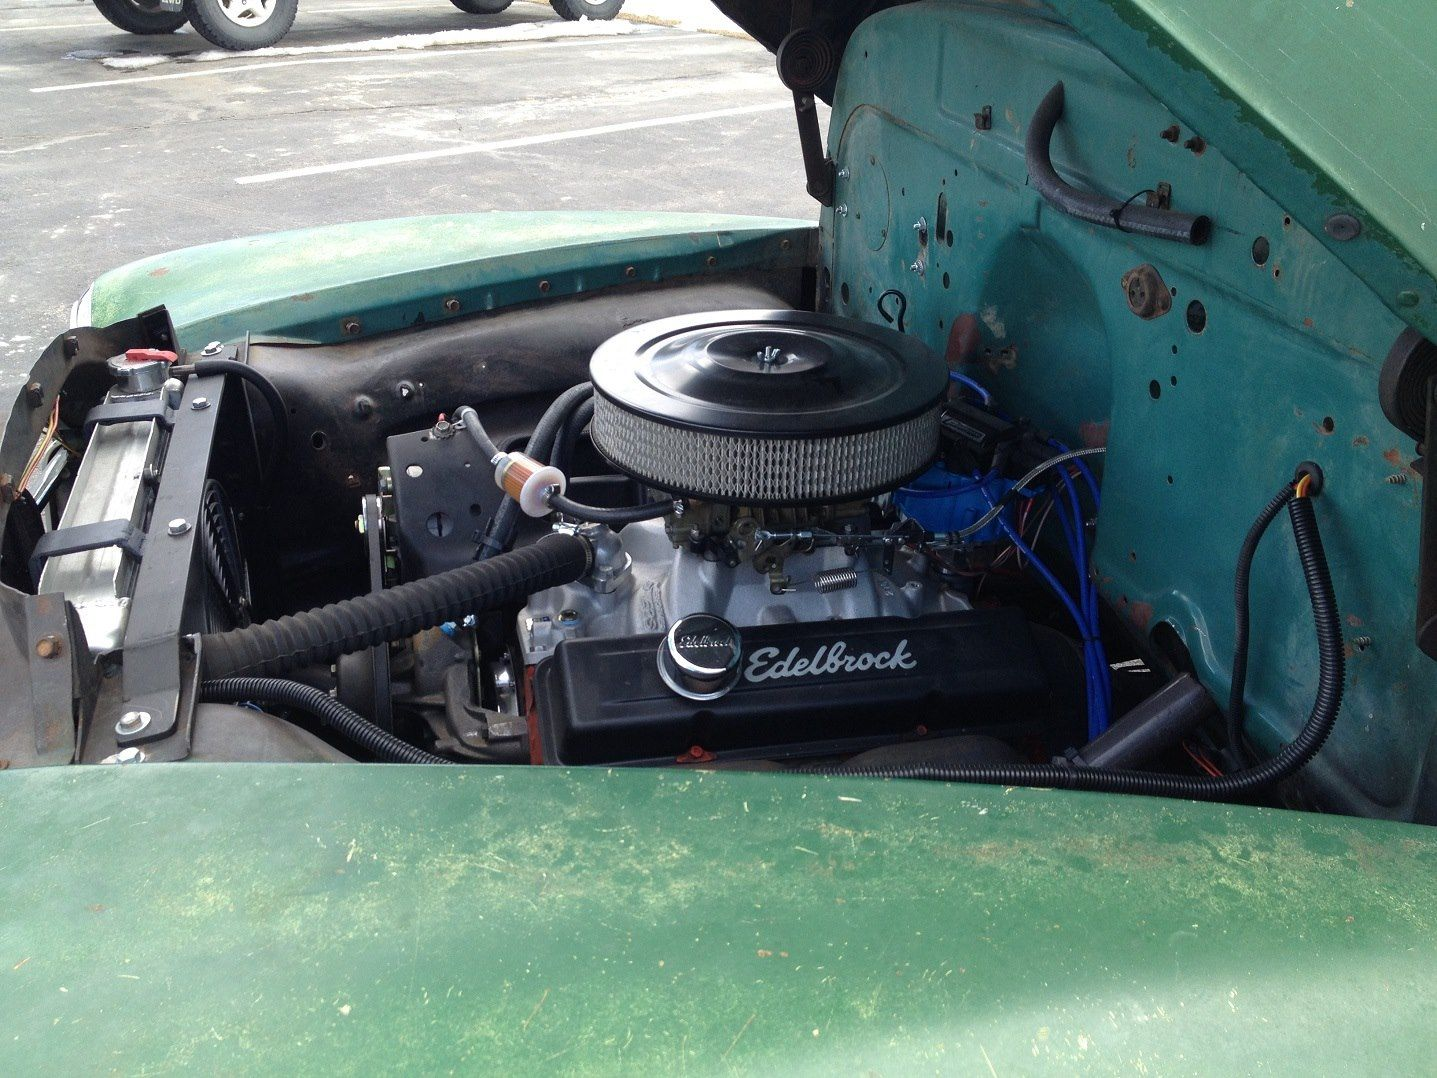 1956 chevy tattoo submited images pic2fly - Custom Radiator